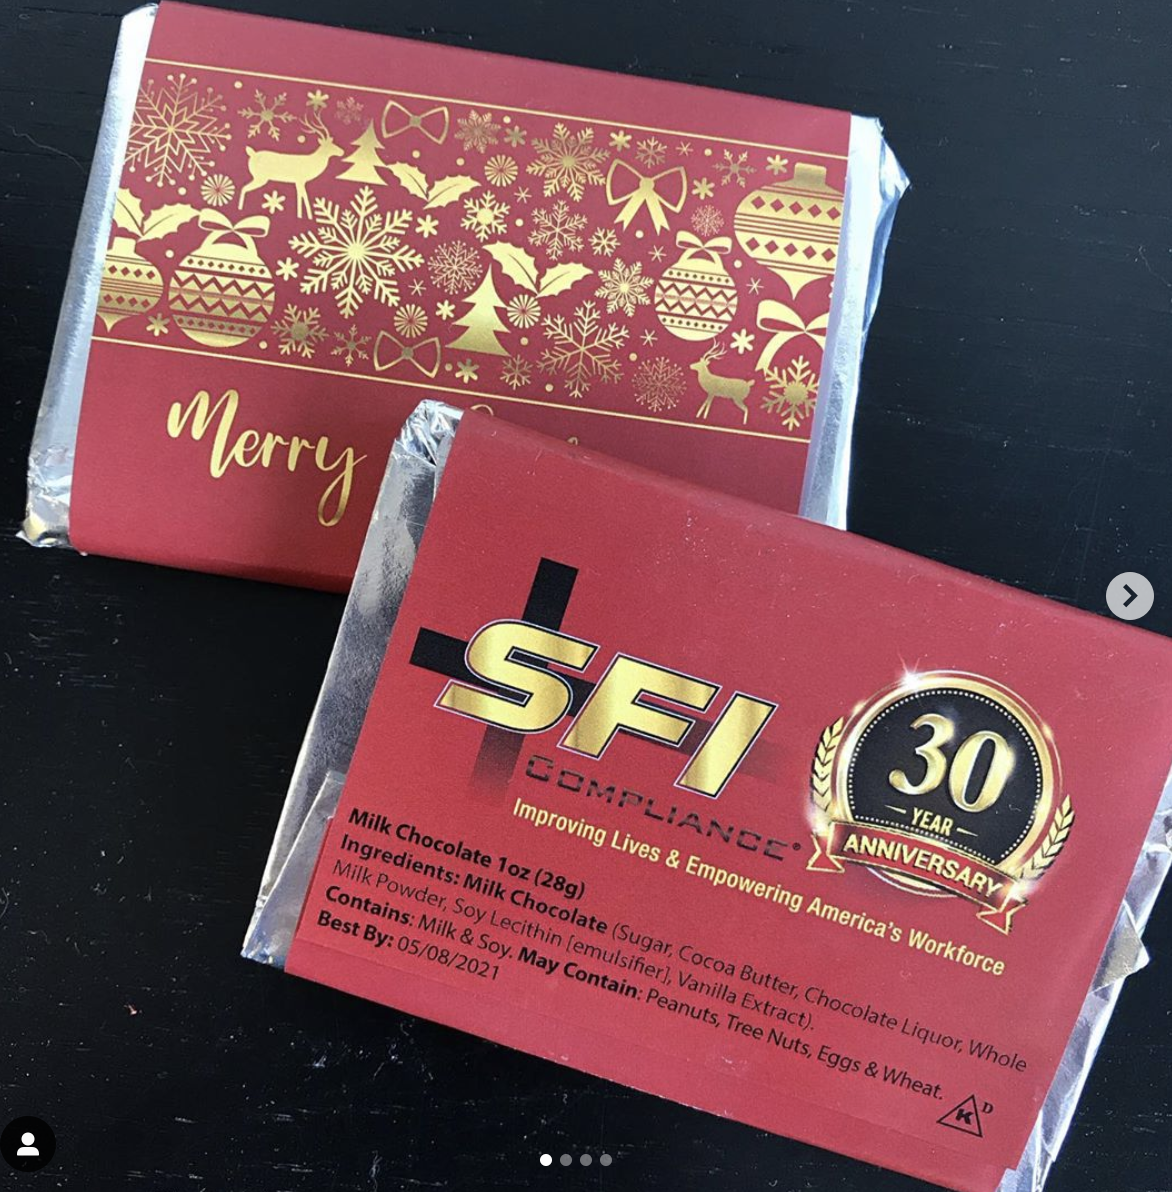 Custom SFI complimentary chocolates.